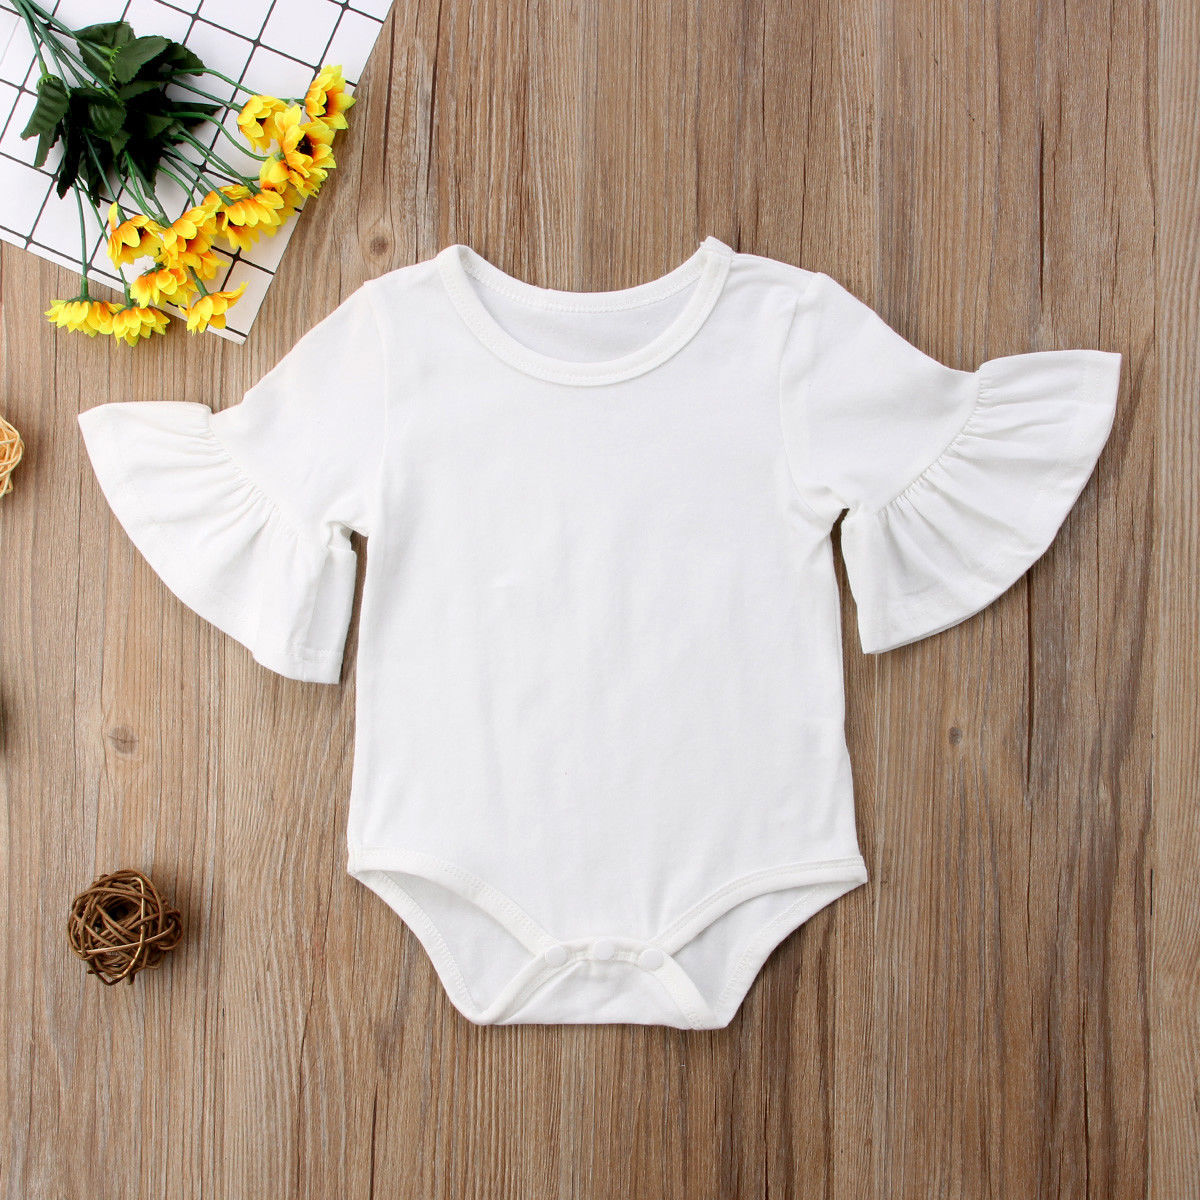 3 Color Newborn Infant Baby Girl Clothes Flared Sleeve Romper Brife Jumpsuit Sunsuit Outfits 3 Color Newborn Infant Baby Girl Clothes Flared Sleeve Romper Brife Jumpsuit Sunsuit Outfits